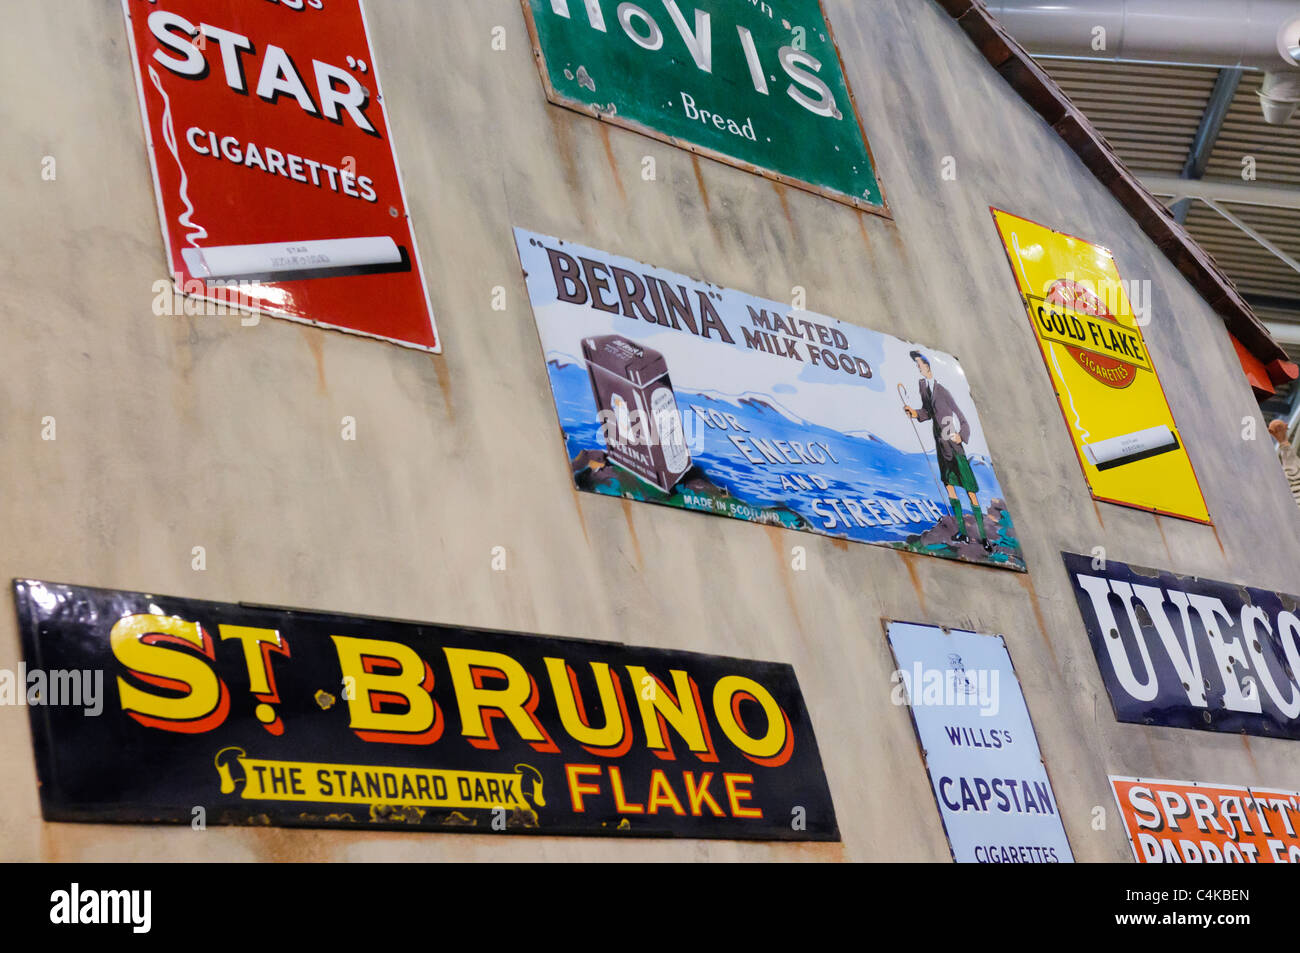 Tobacco and food advertising on the side of an old fashioned shop - Stock Image